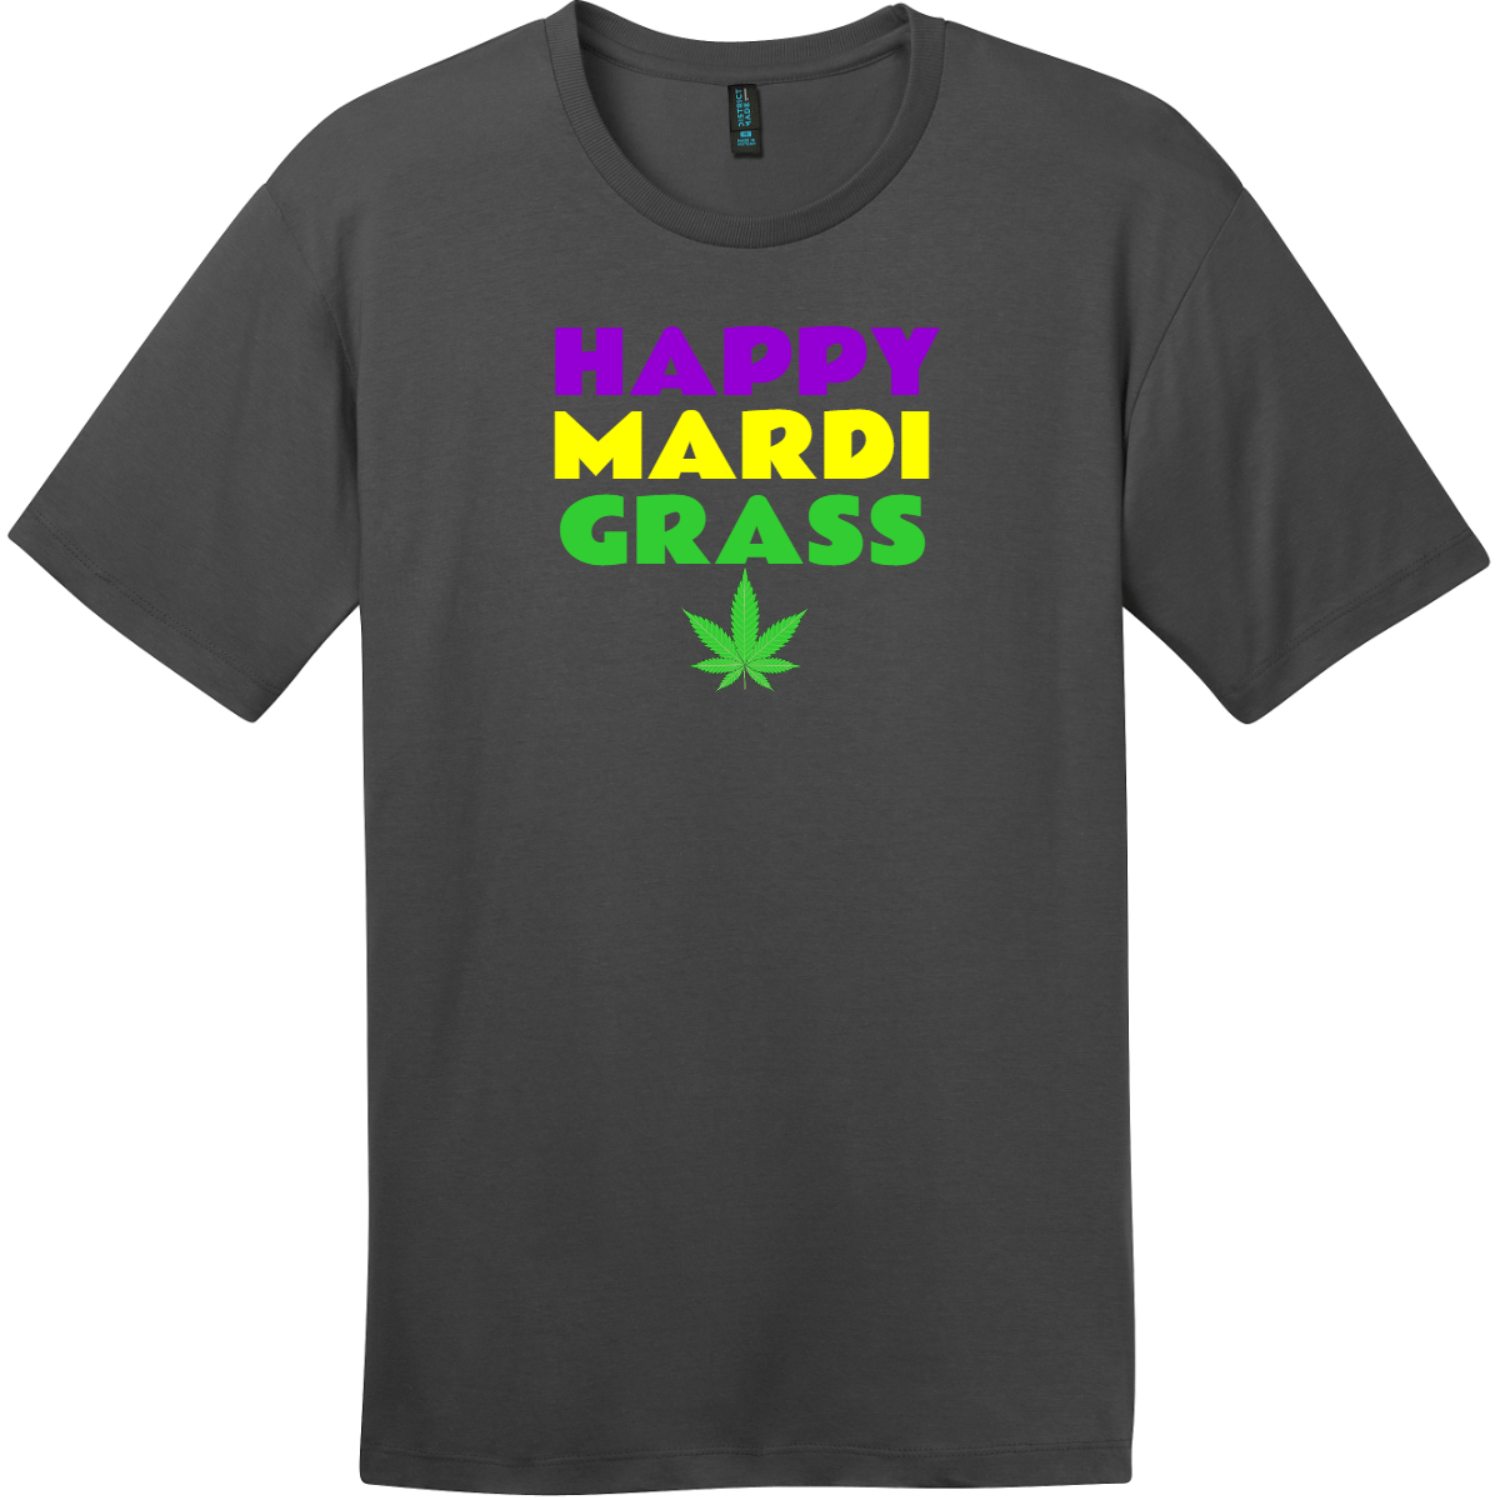 Happy Mardi Grass Weed T-Shirt Charcoal District Perfect Weight Tee DT104